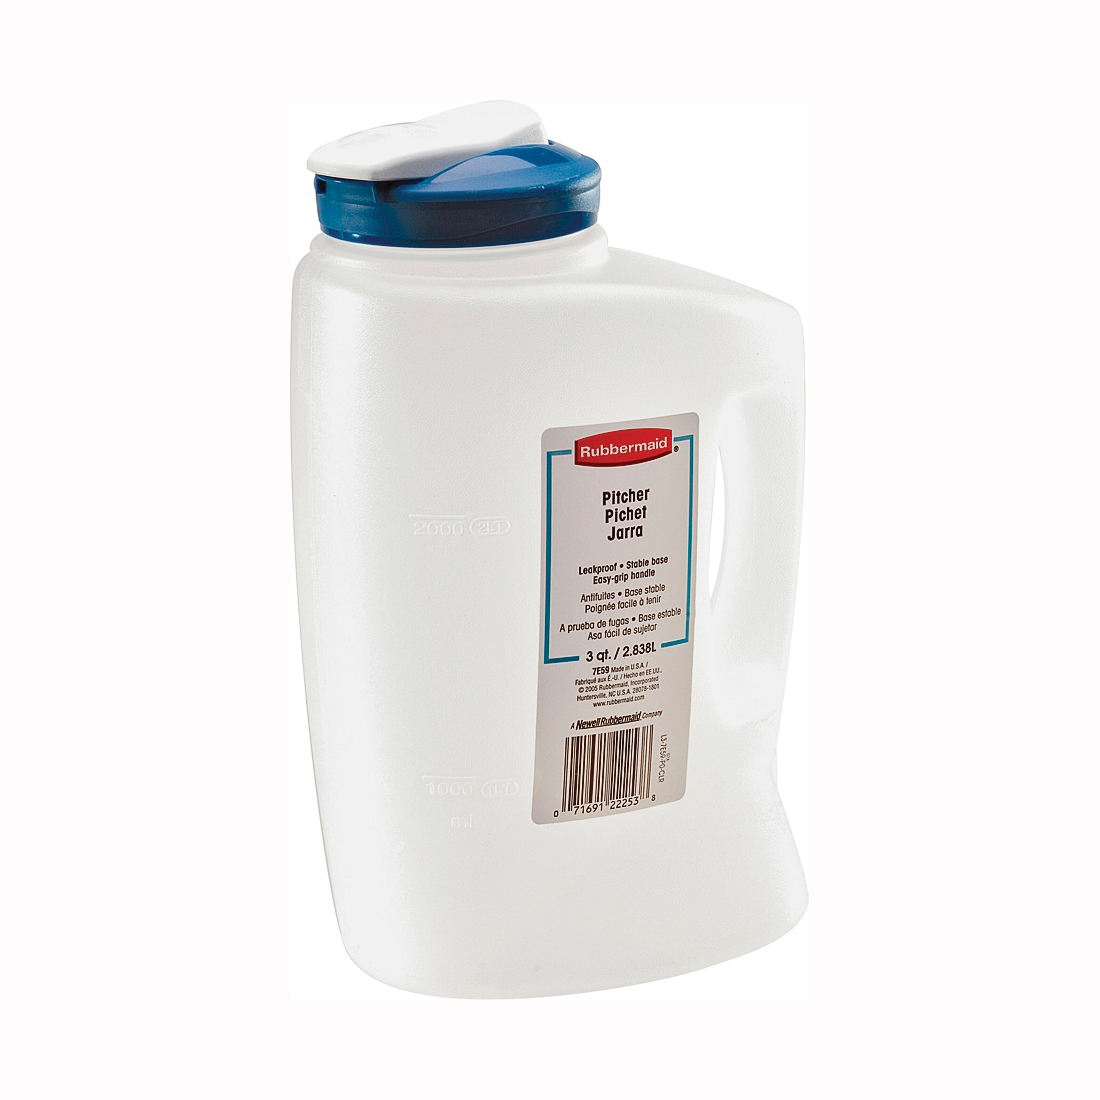 Picture of Rubbermaid 1776501 Beverage Bottle, 3 qt Capacity, 5-1/2 in L, 6.8 in W, 4.7 in H, Clear